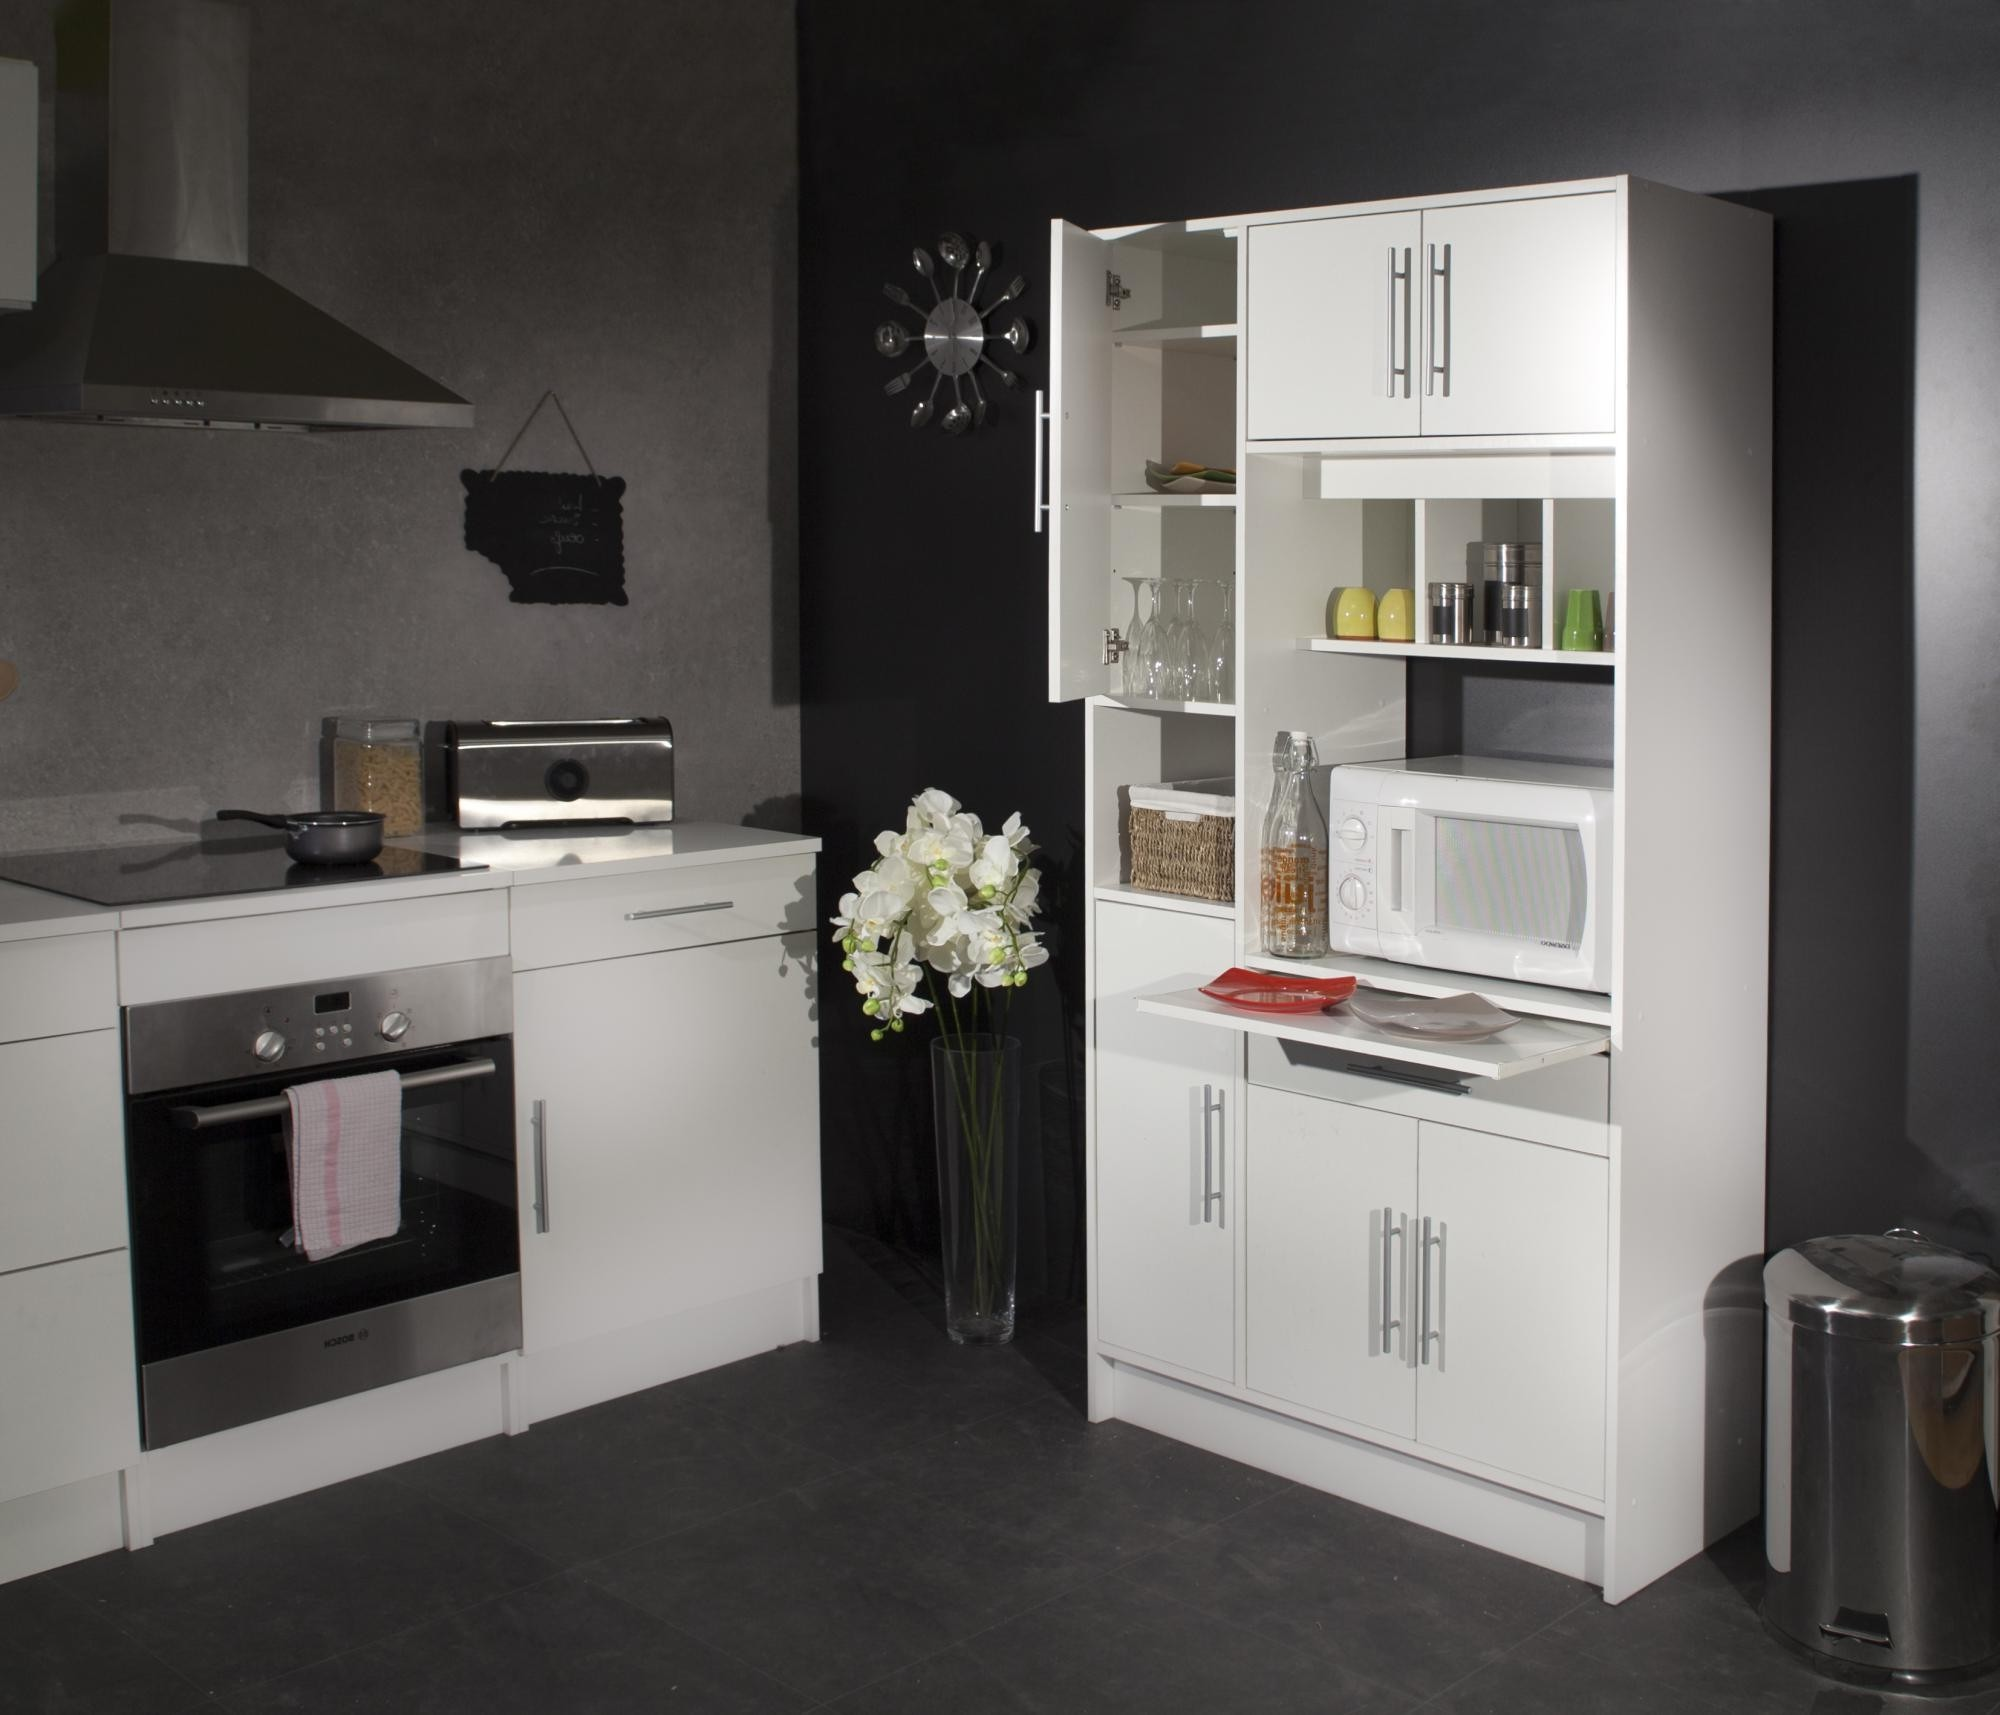 meuble appoint cuisine petit meuble d appoint a d appoint s x petit meuble dappoint blanc pas. Black Bedroom Furniture Sets. Home Design Ideas